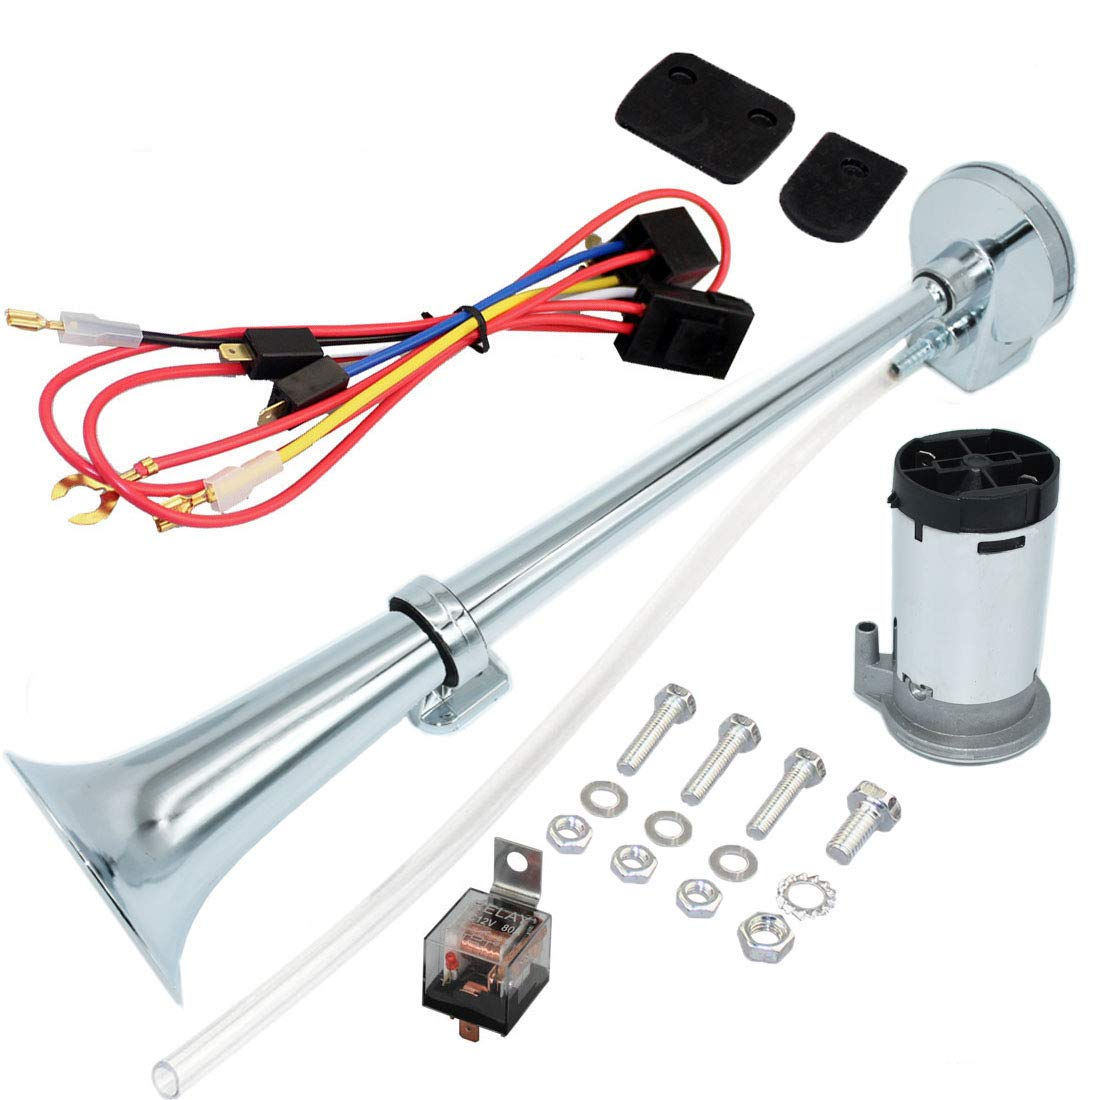 Airzir 12V Air Horn Kit Chrome Plated Zinc Single Trumpet Air Horn with Compressor for Any 12V Vehicles Car Truck RV Van SUV Motorcycle Off Road Boat